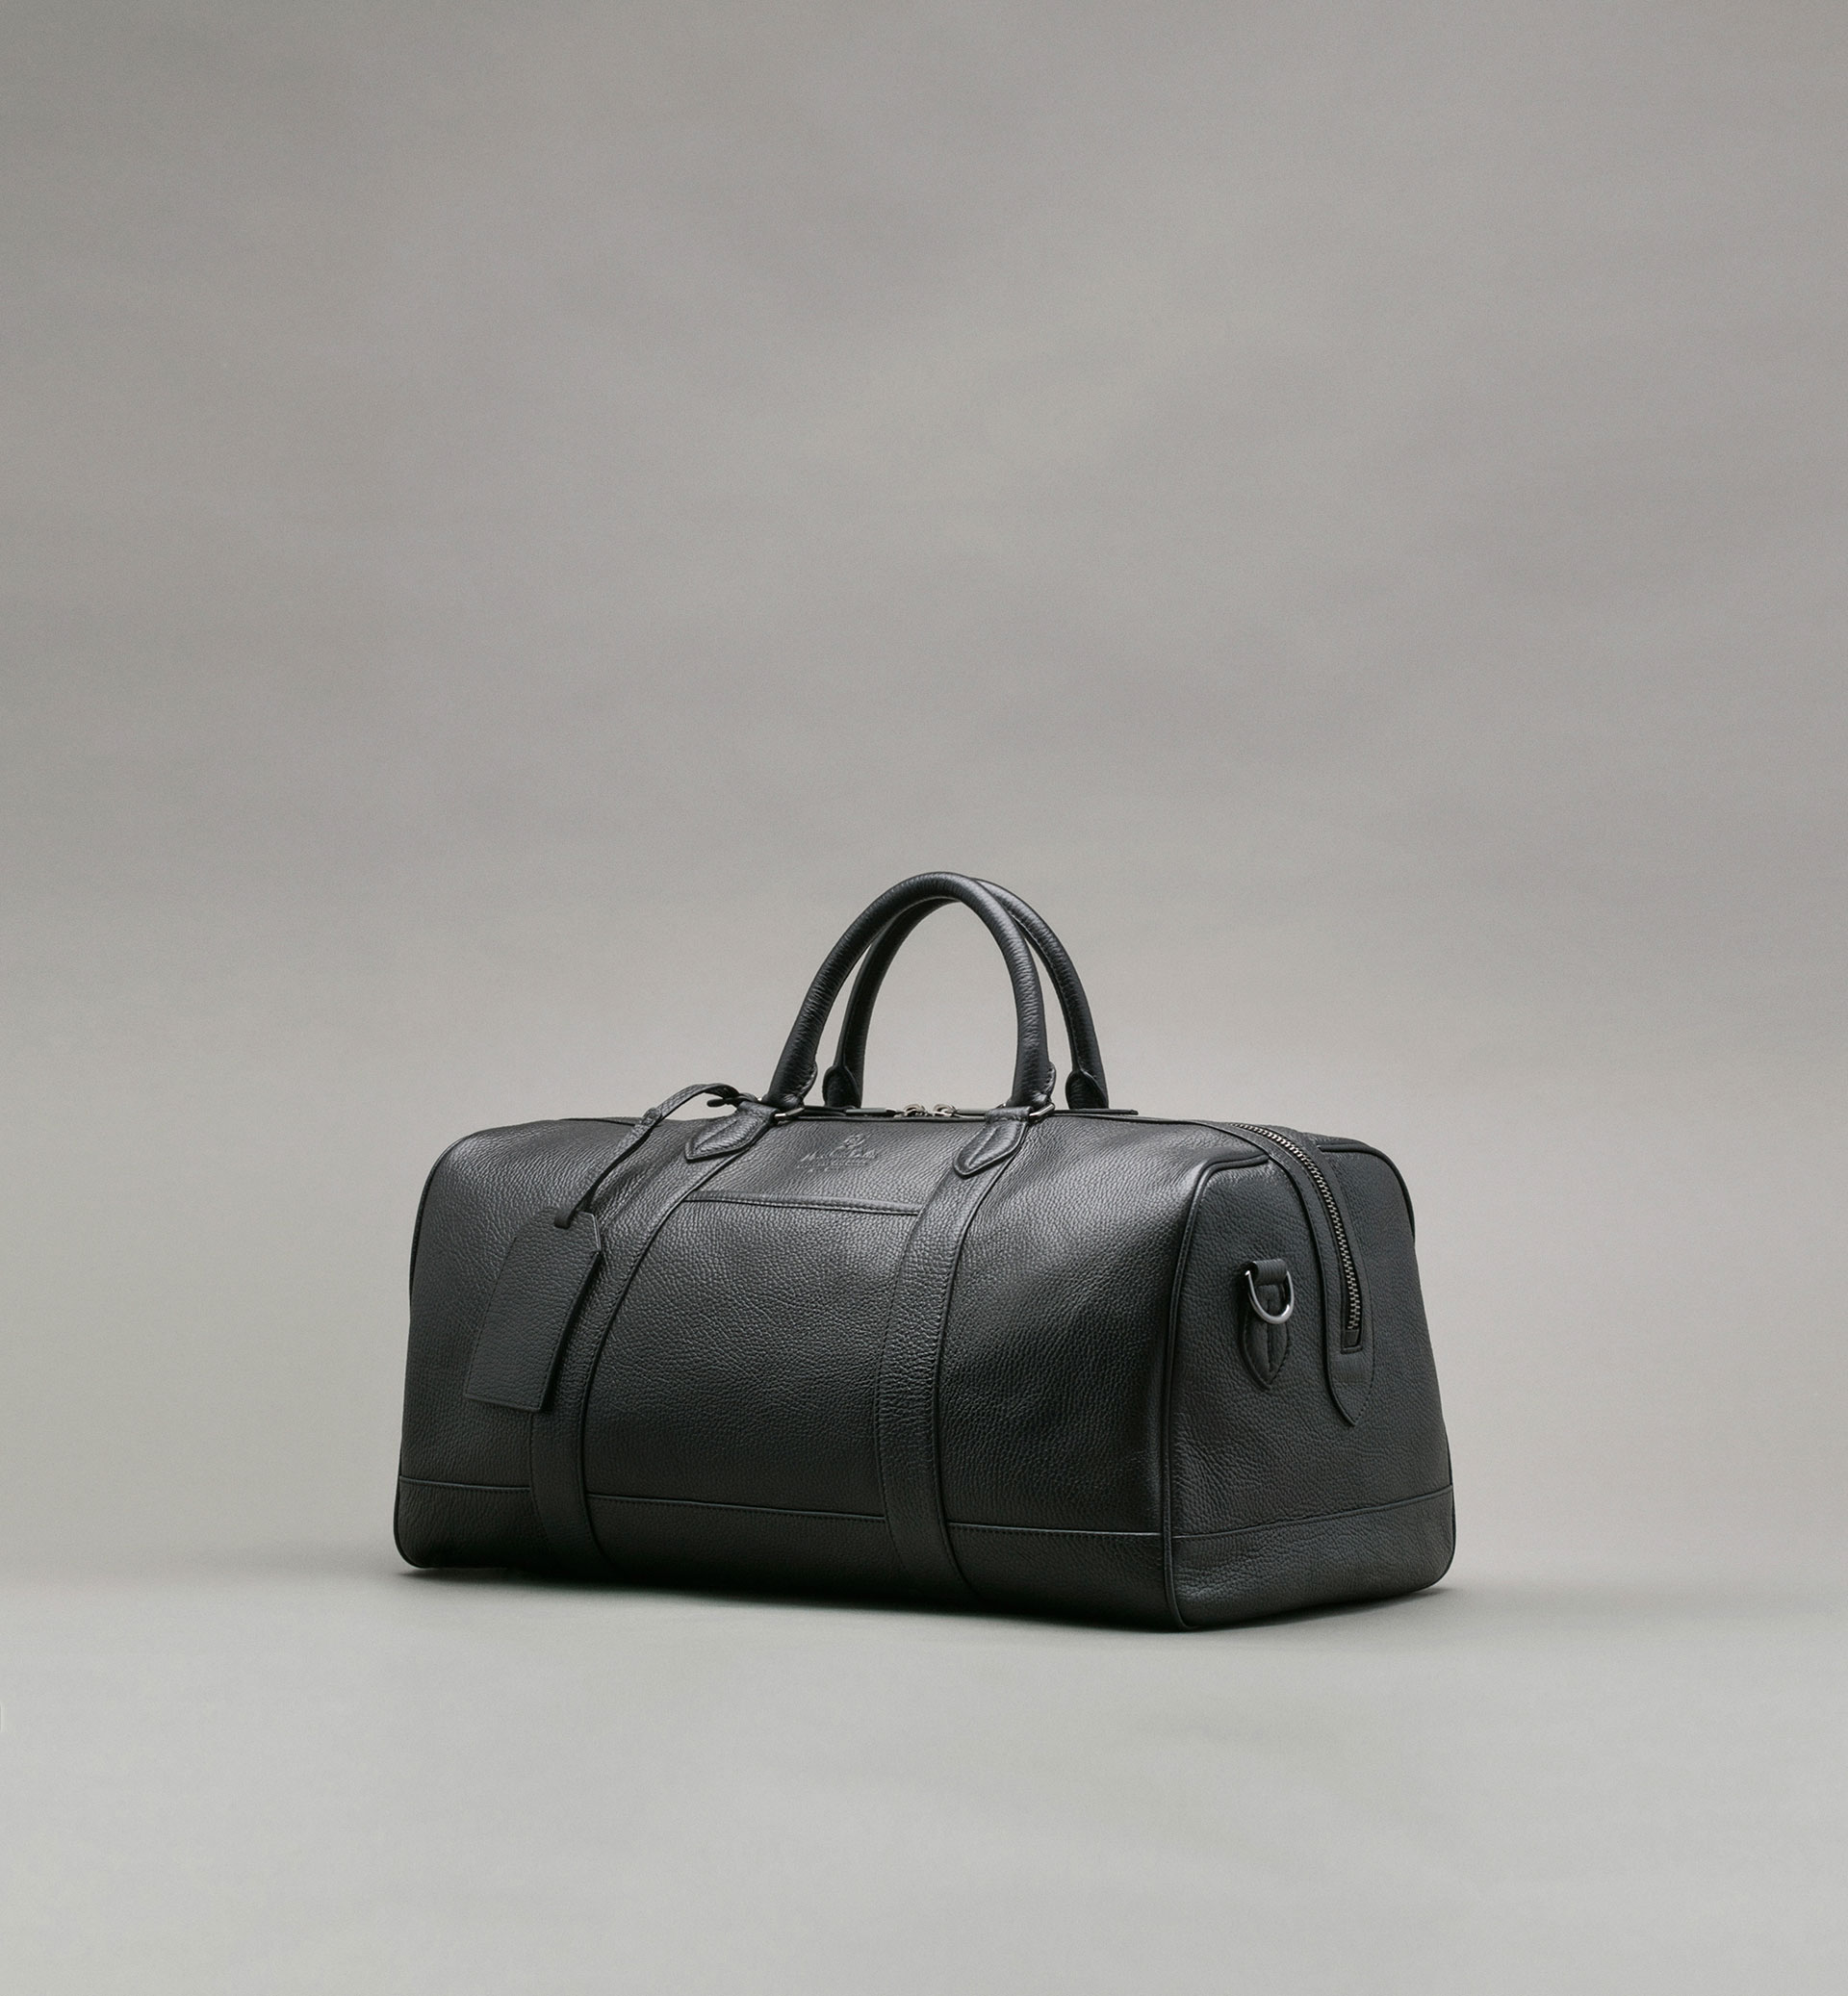 PERSONAL TAILORING LEATHER HOLDALL